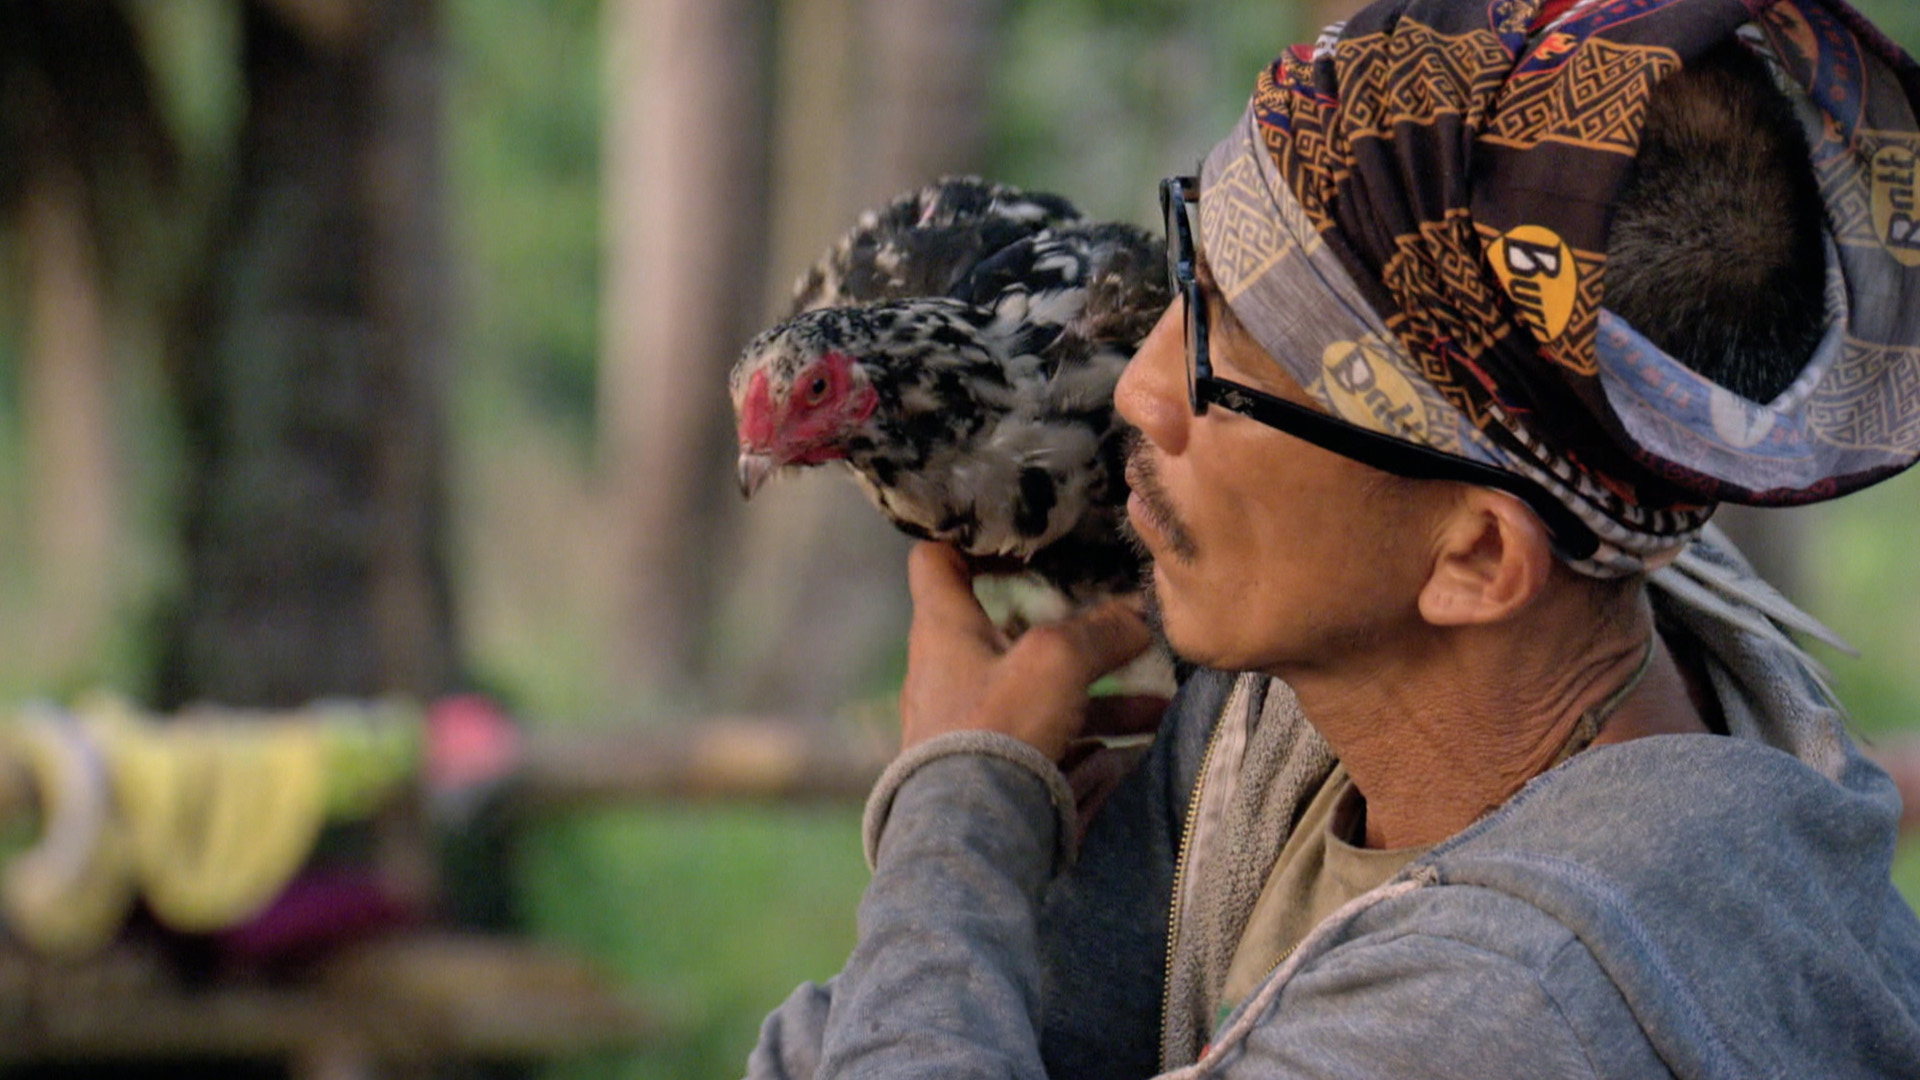 Tai takes a private moment with his beloved chicken.